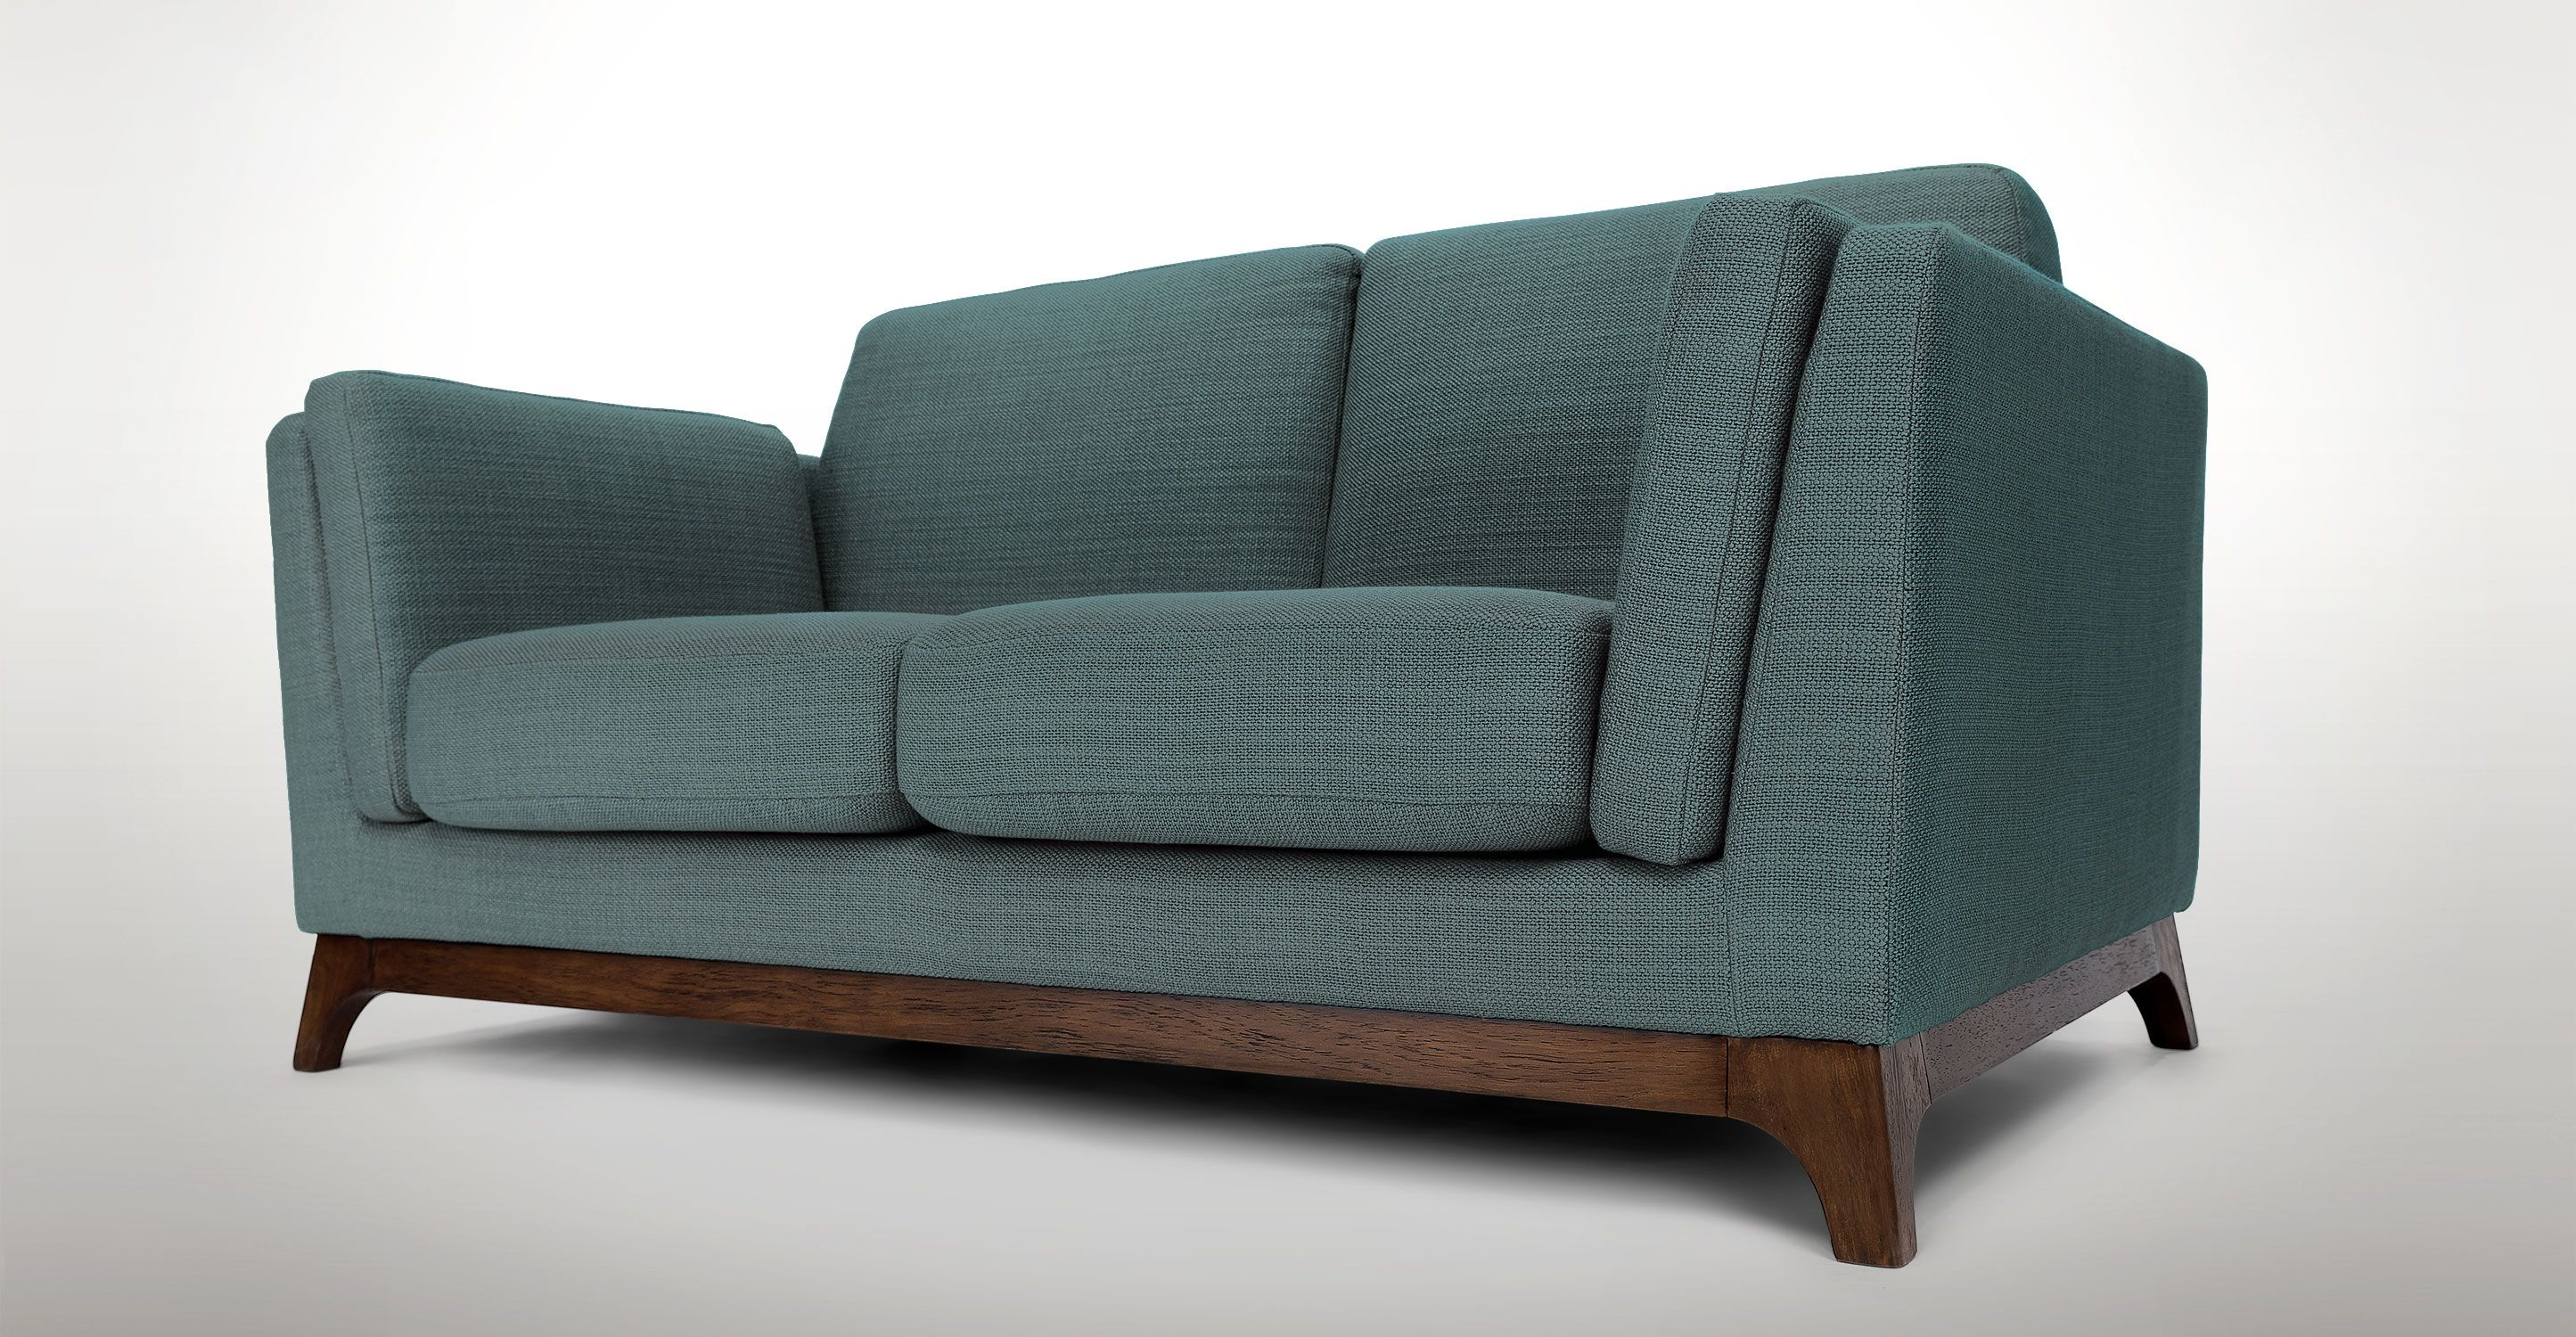 Gray Loveseat With Solid Wood Legs